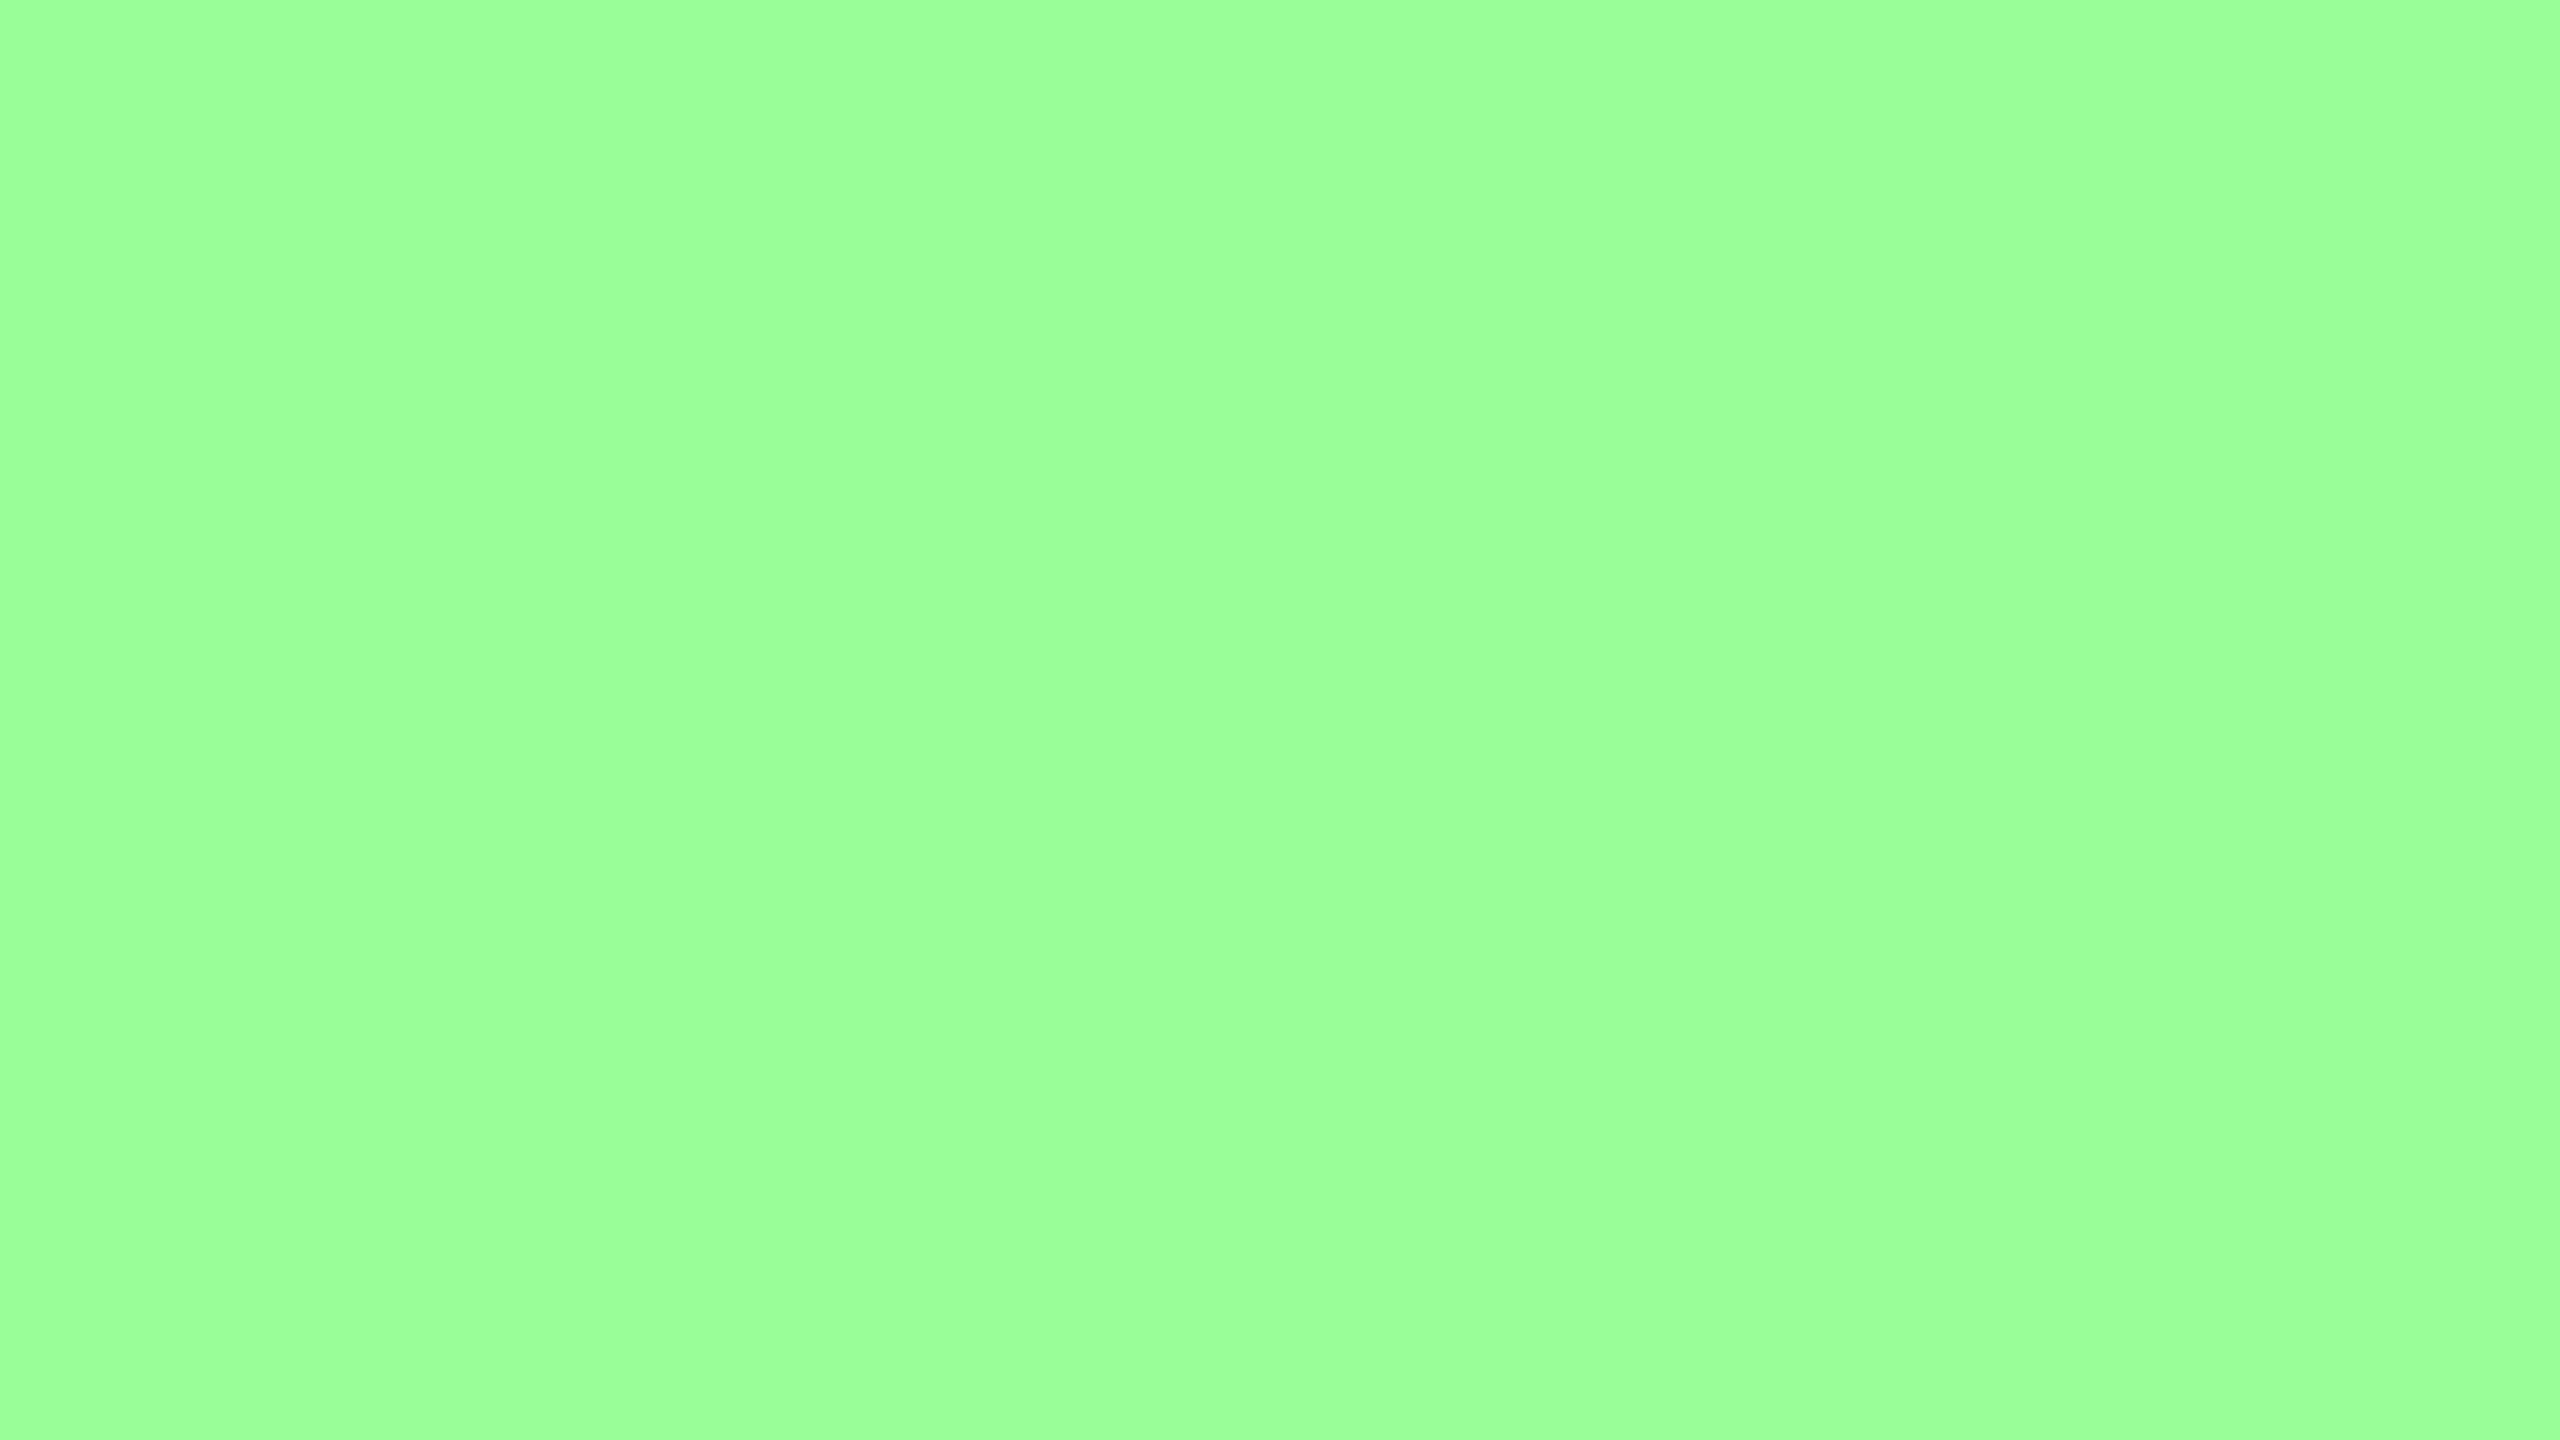 2560x1440 resolution Mint Green solid color background view and 2560x1440